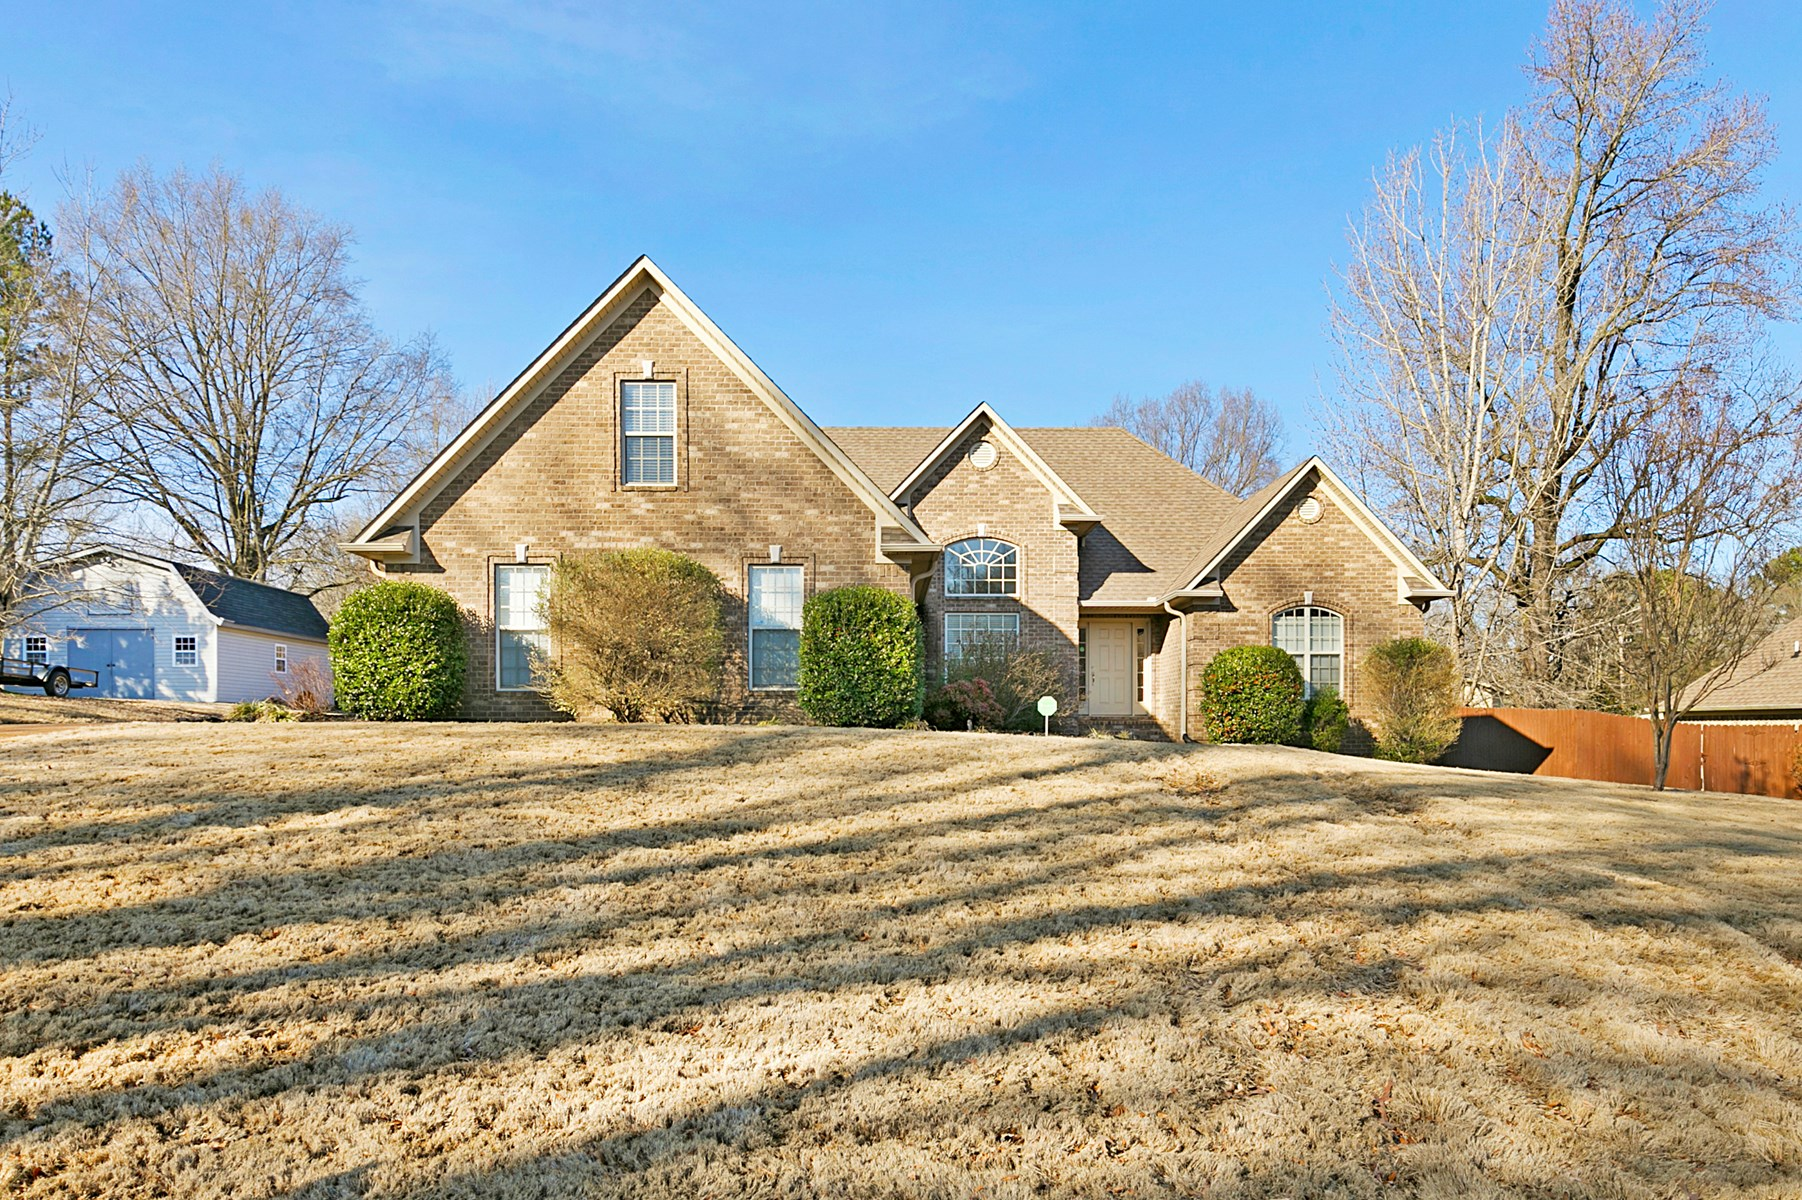 4 BR Brick Home For Sale in Prime Location - Milan, TN